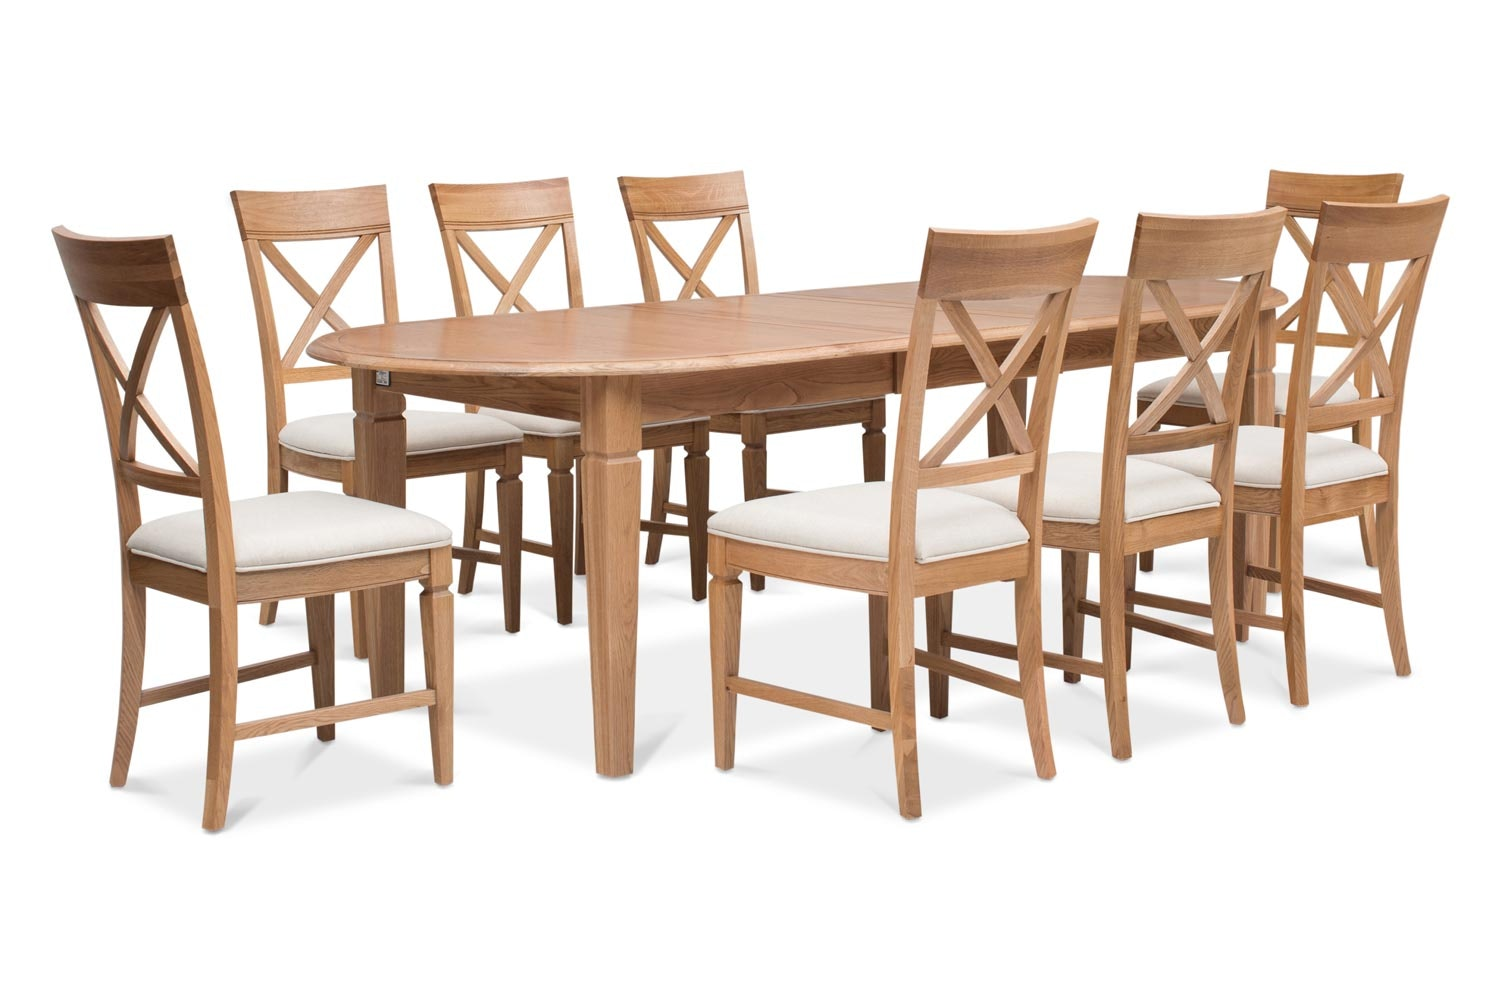 Prunella 9pc Dining Set | Oval Extending Table